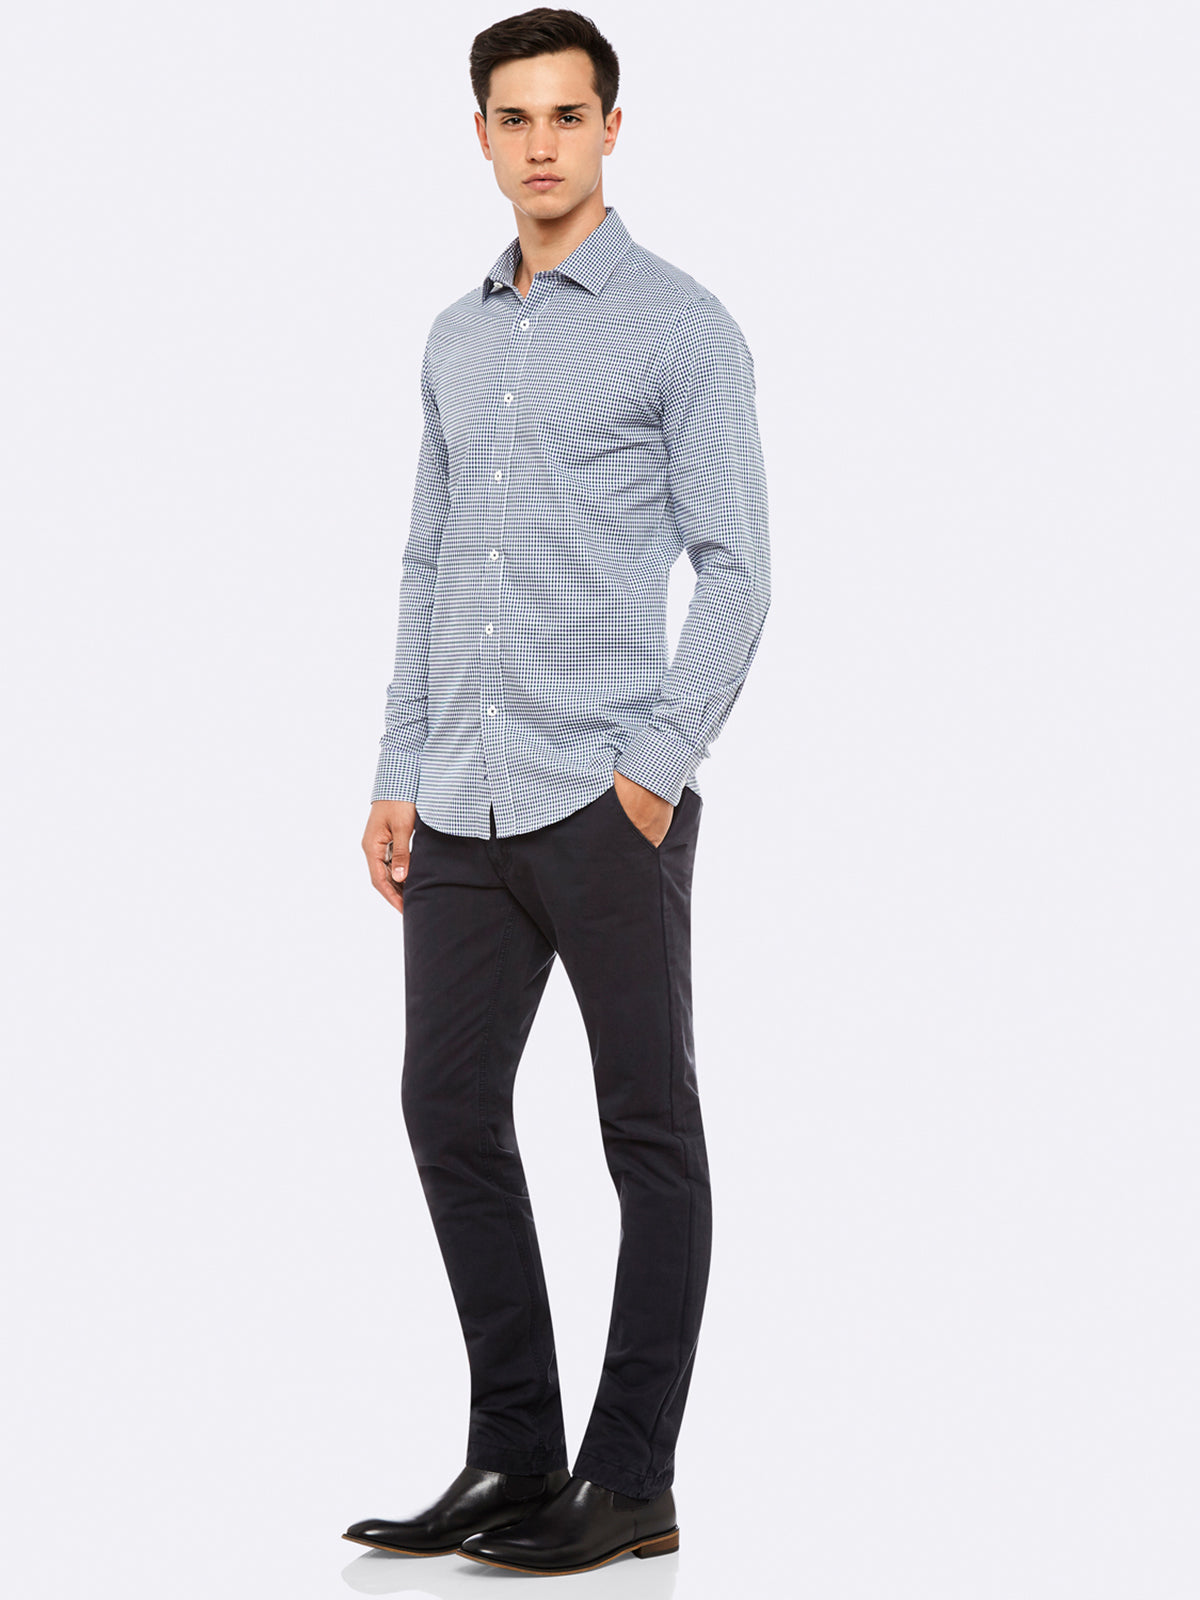 BECKTON MINI CHCK SHIRT GRY/MBRRY